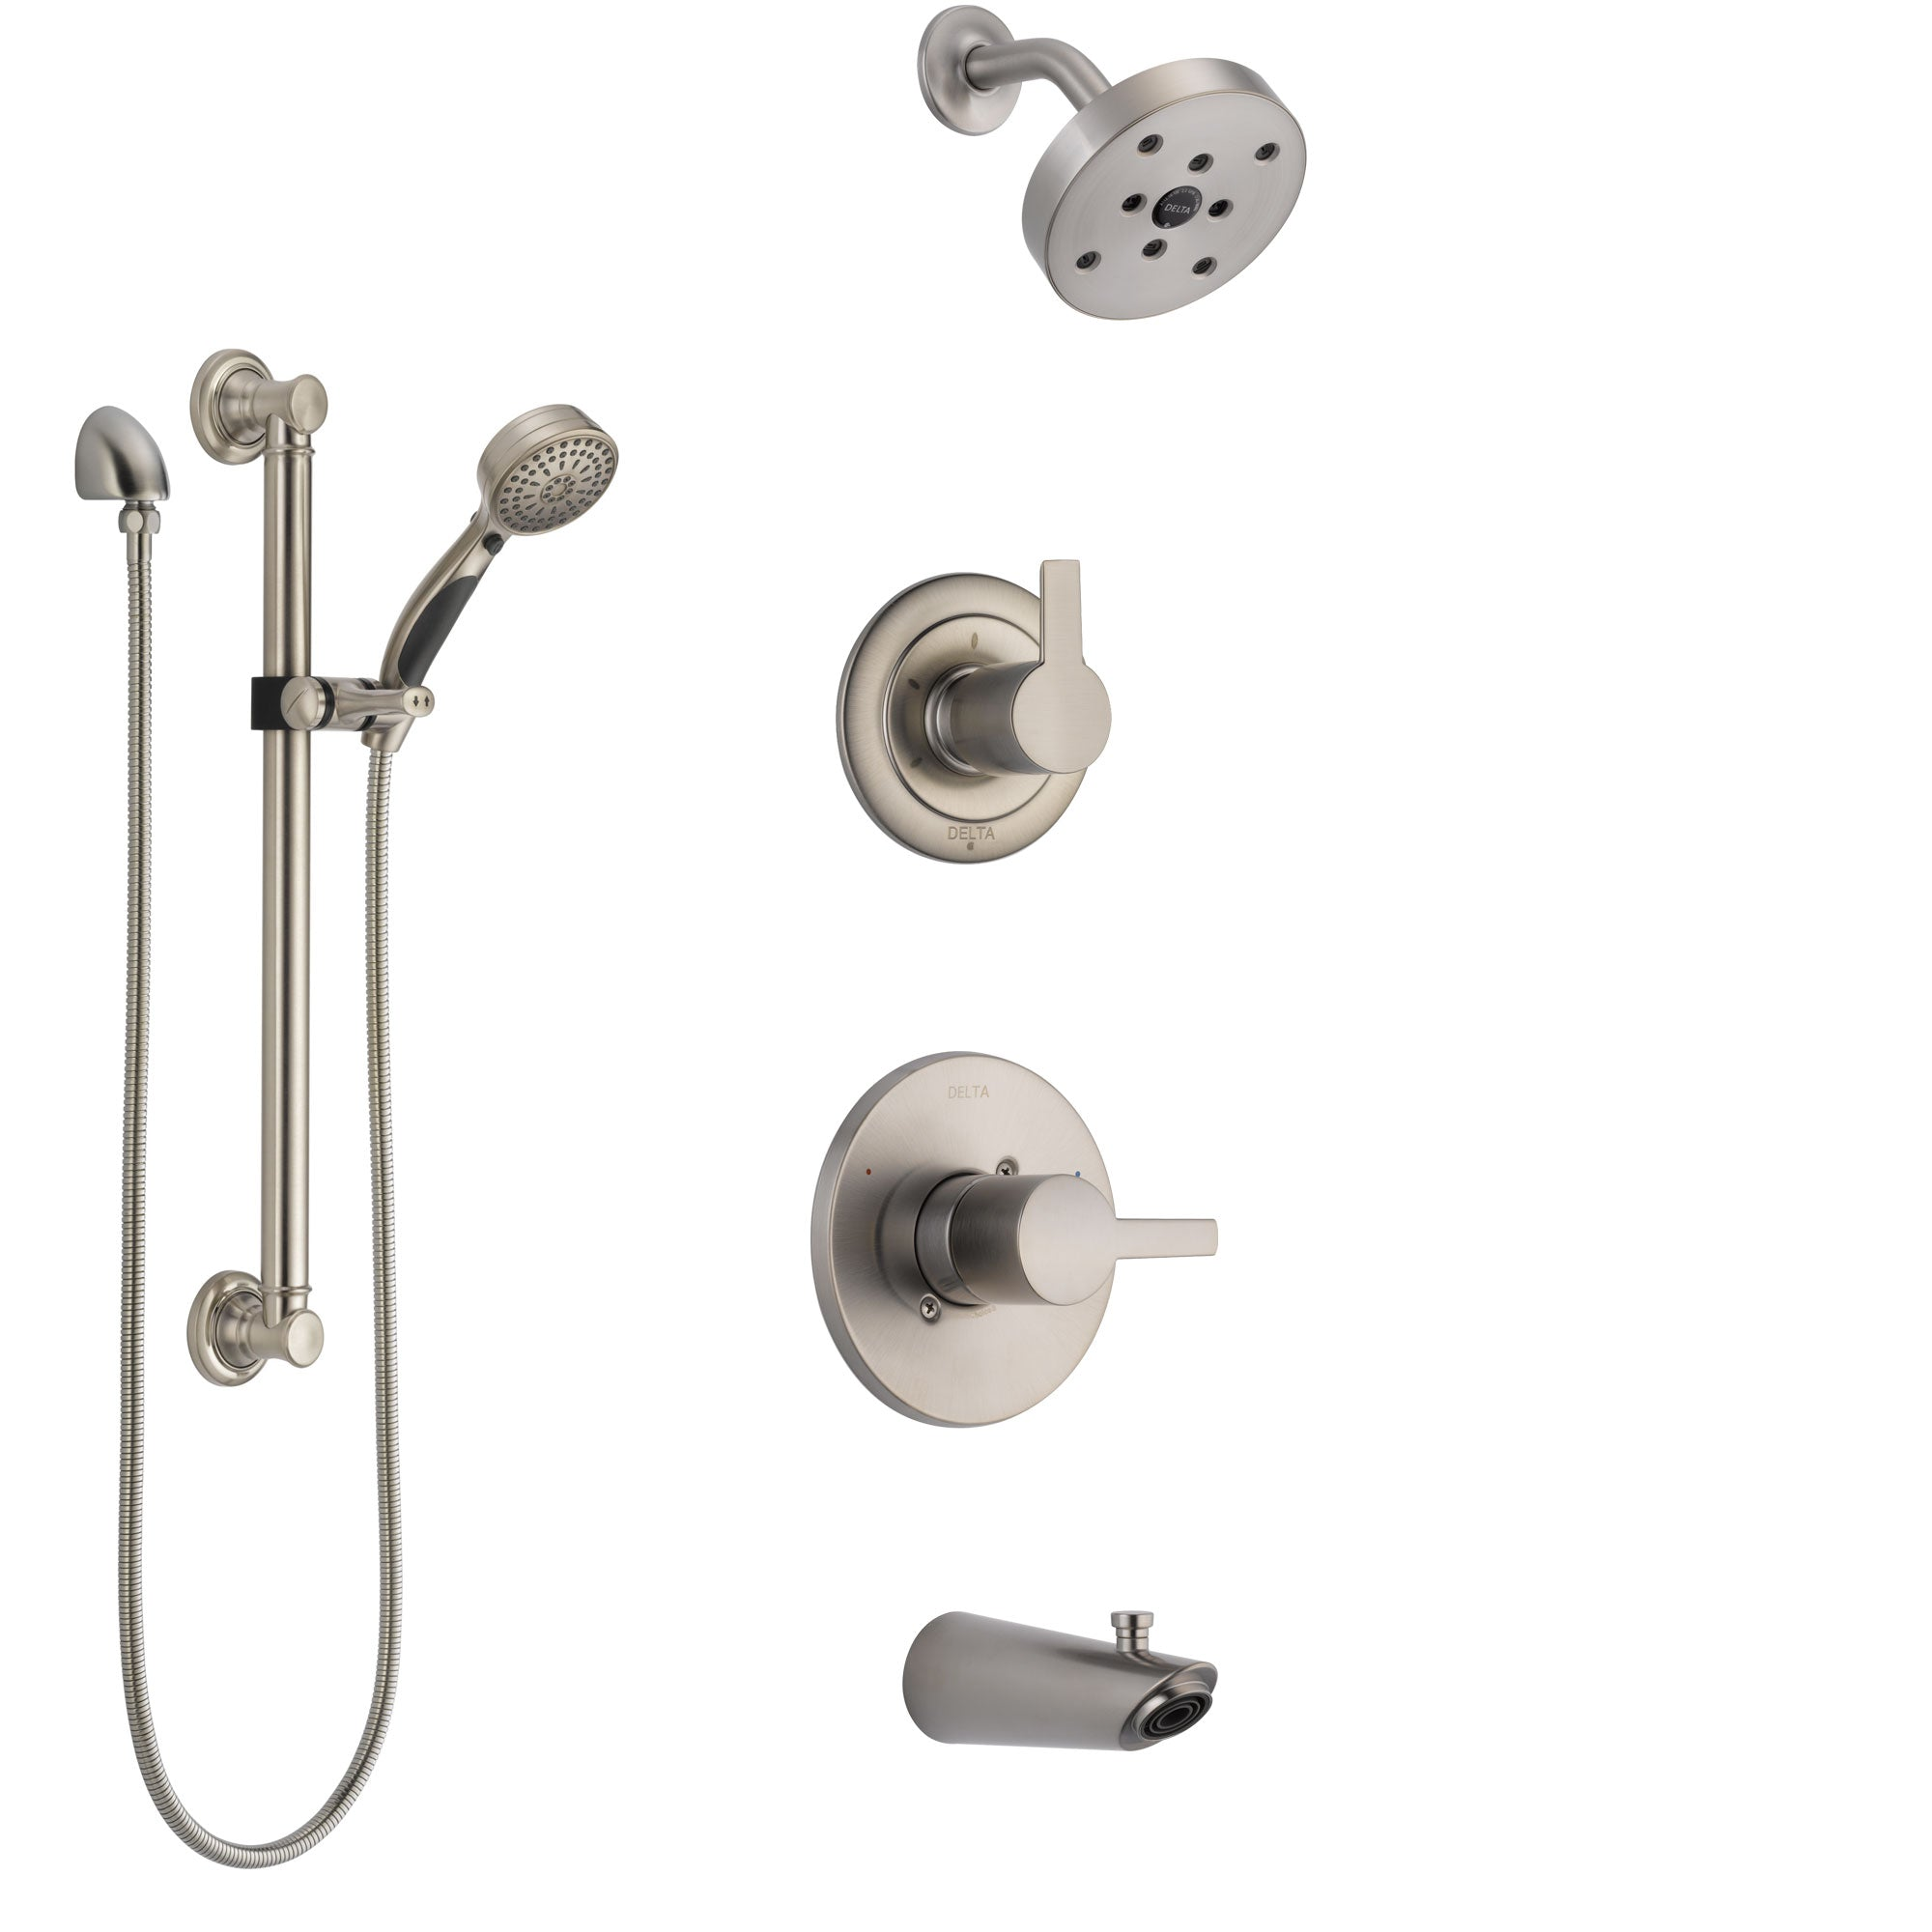 Delta Compel Stainless Steel Finish Tub and Shower System with Control Handle, Diverter, Showerhead, and Hand Shower with Grab Bar SS14461SS3